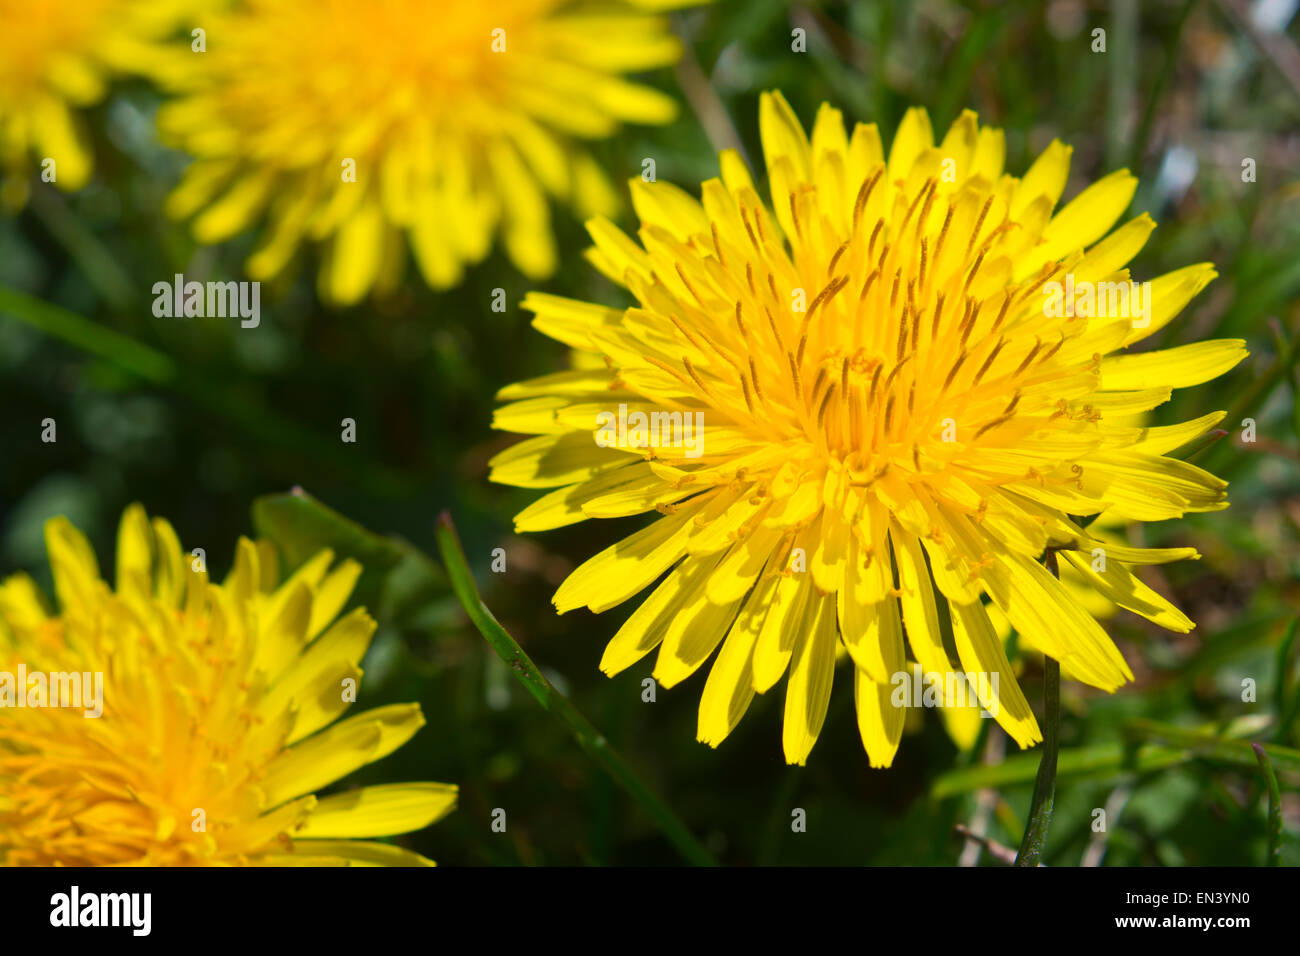 Yellow Dandelion flower Taraxacum officinale, the common dandelion - Stock Image